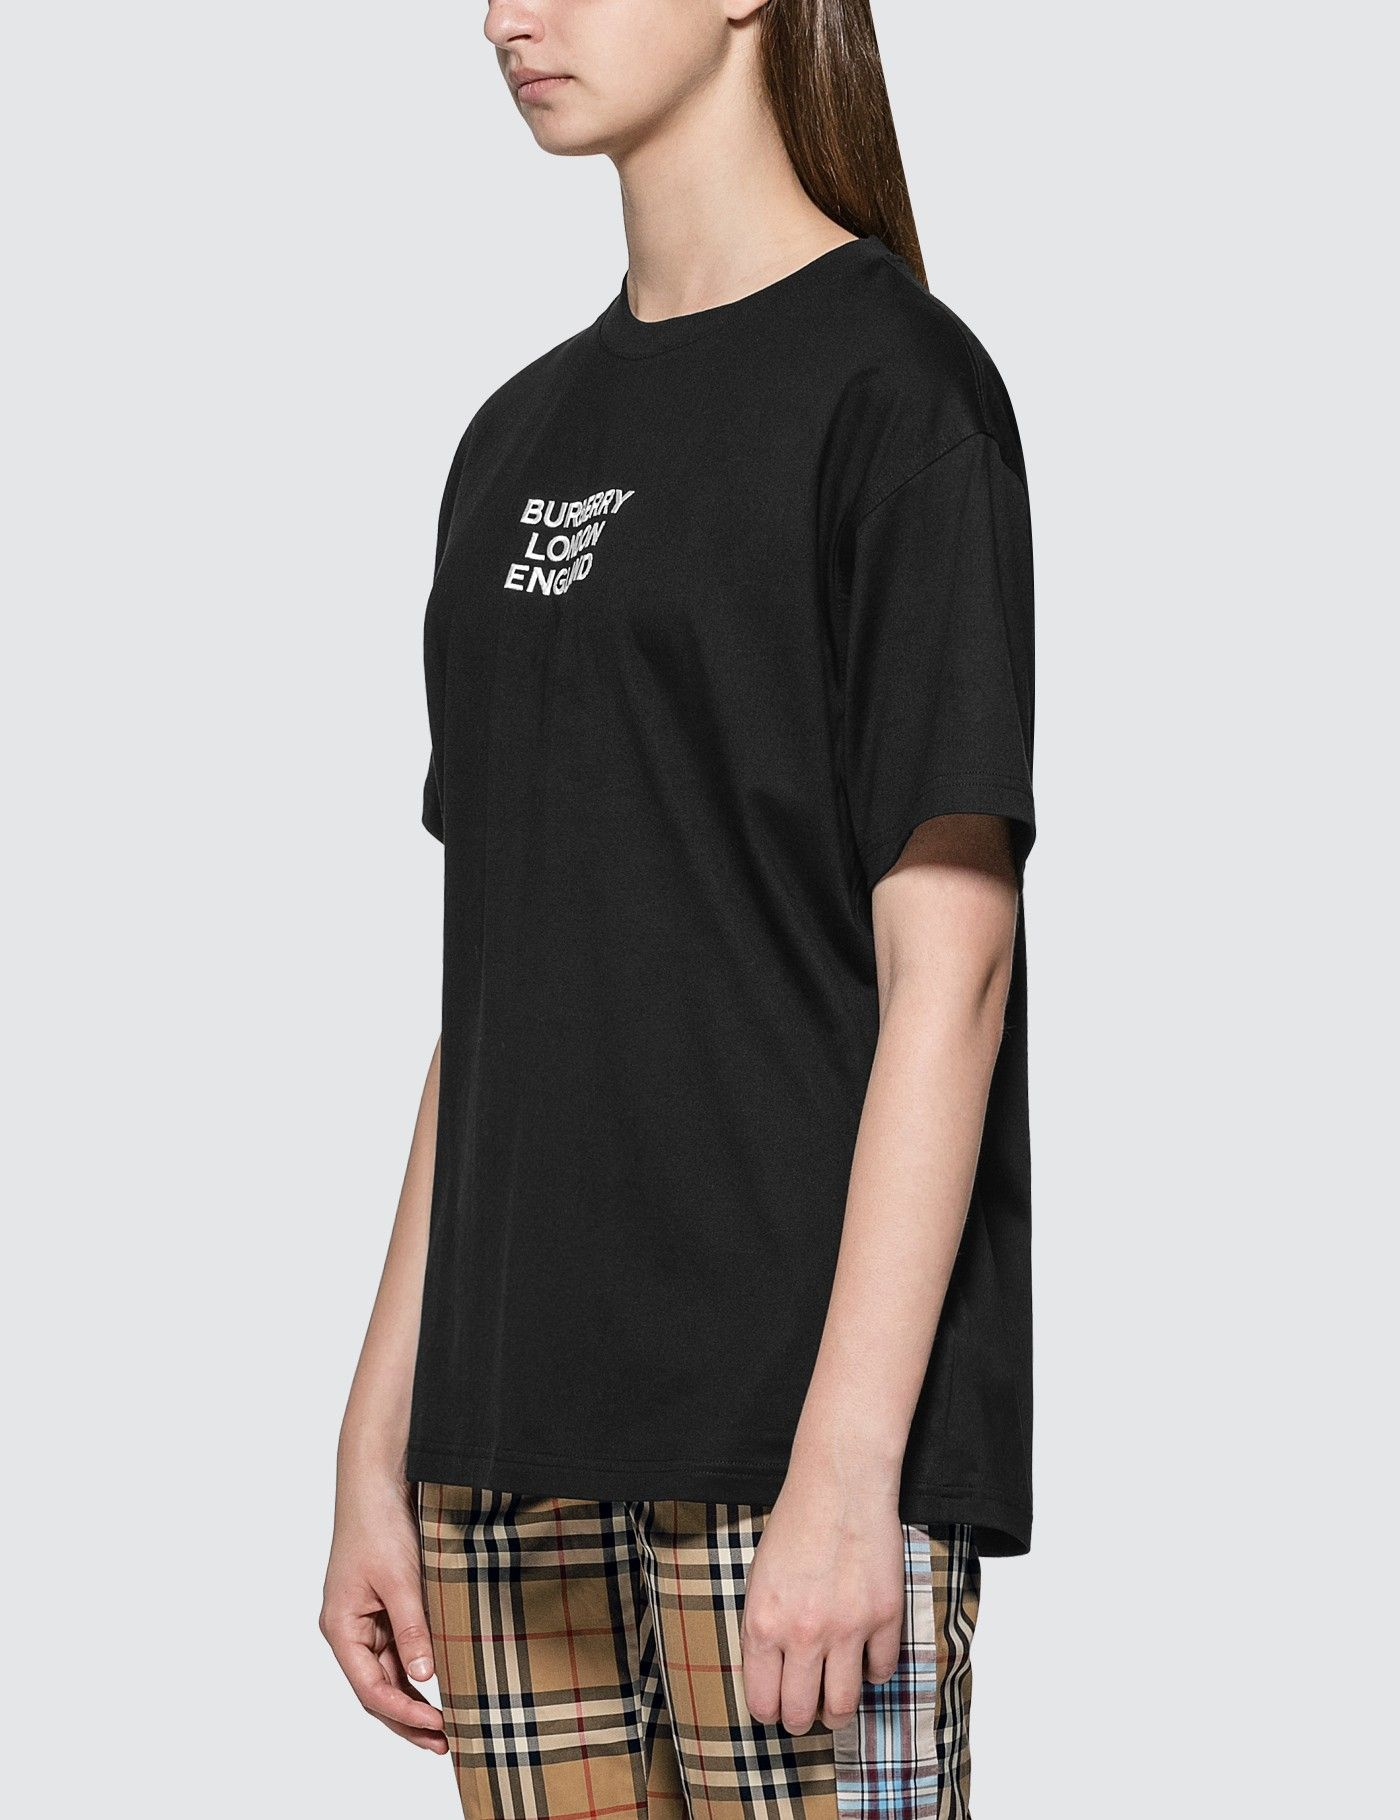 Burberry Logo Tshirt HBX in 2020 Shopping outfit